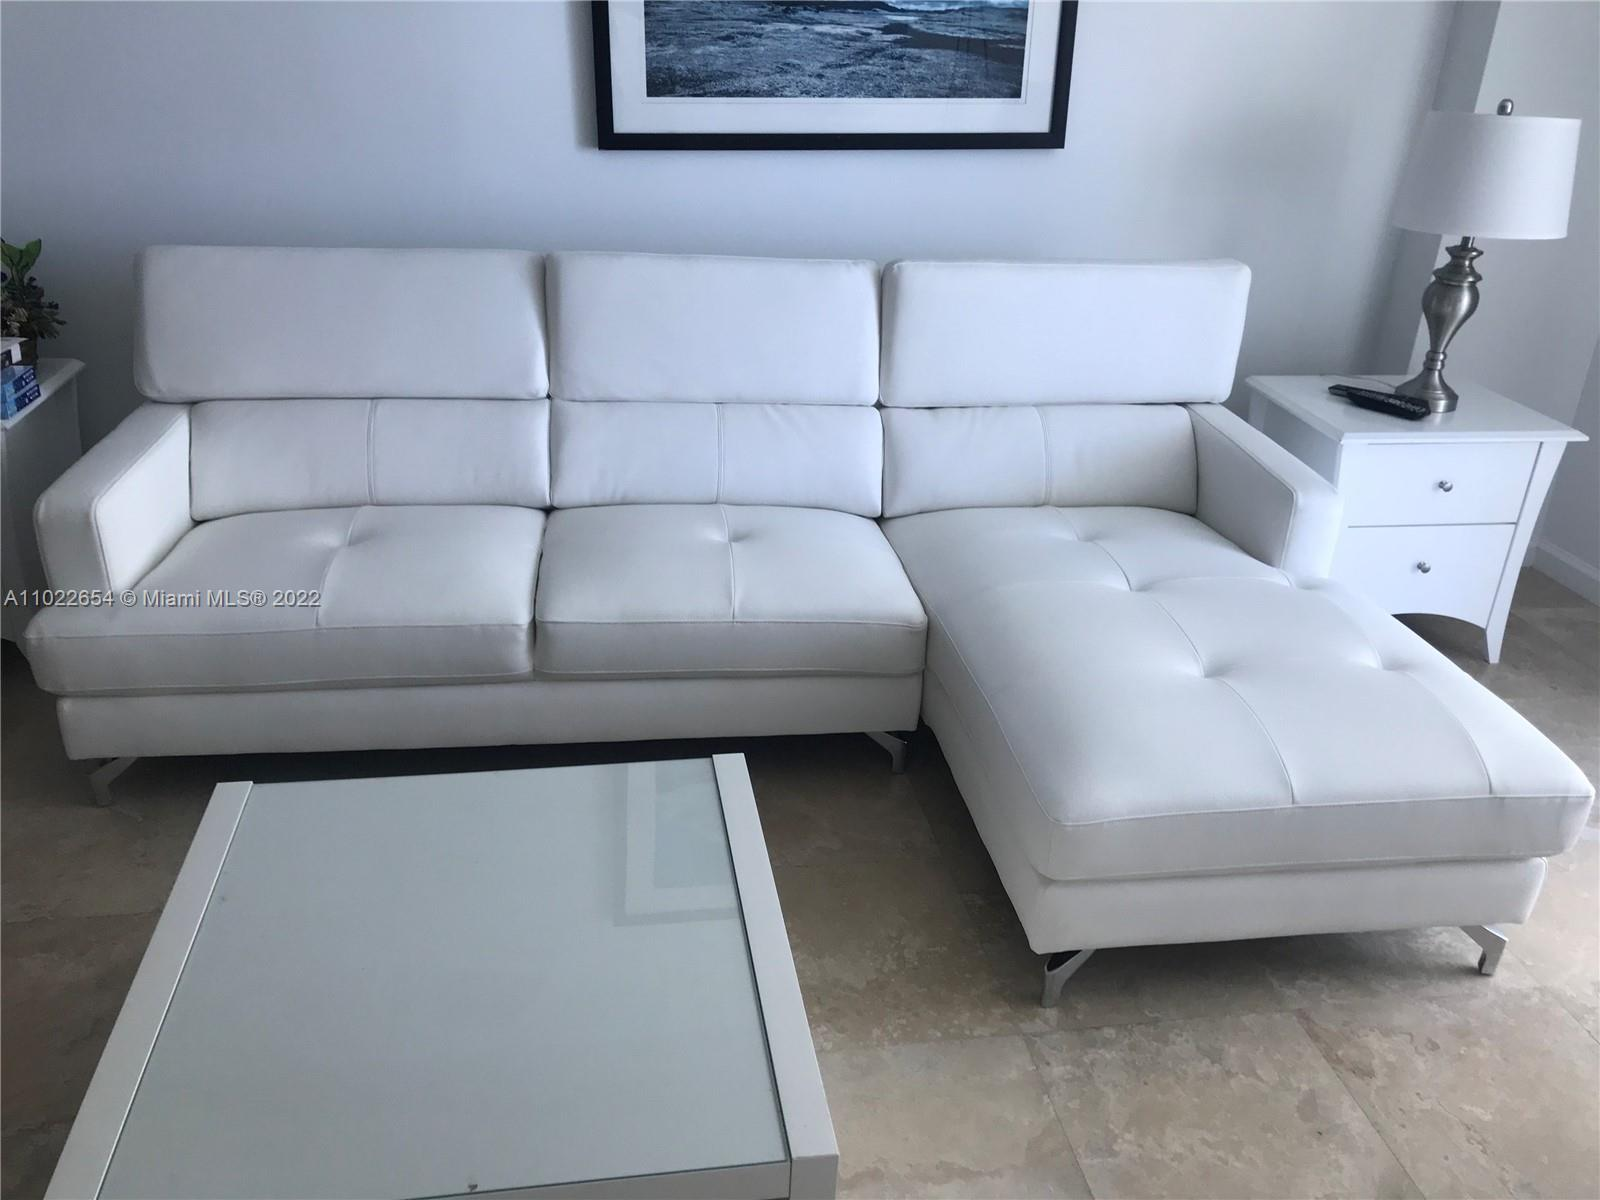 Beautiful furnished unit with nice marble floors and stainless steel appliances, nicely furnished, great amenities, seasonal rental, Great location. Walking distance to restaurants, Mary Brickell and Brickell city Center mall. term.  short term only .  No subleasing,